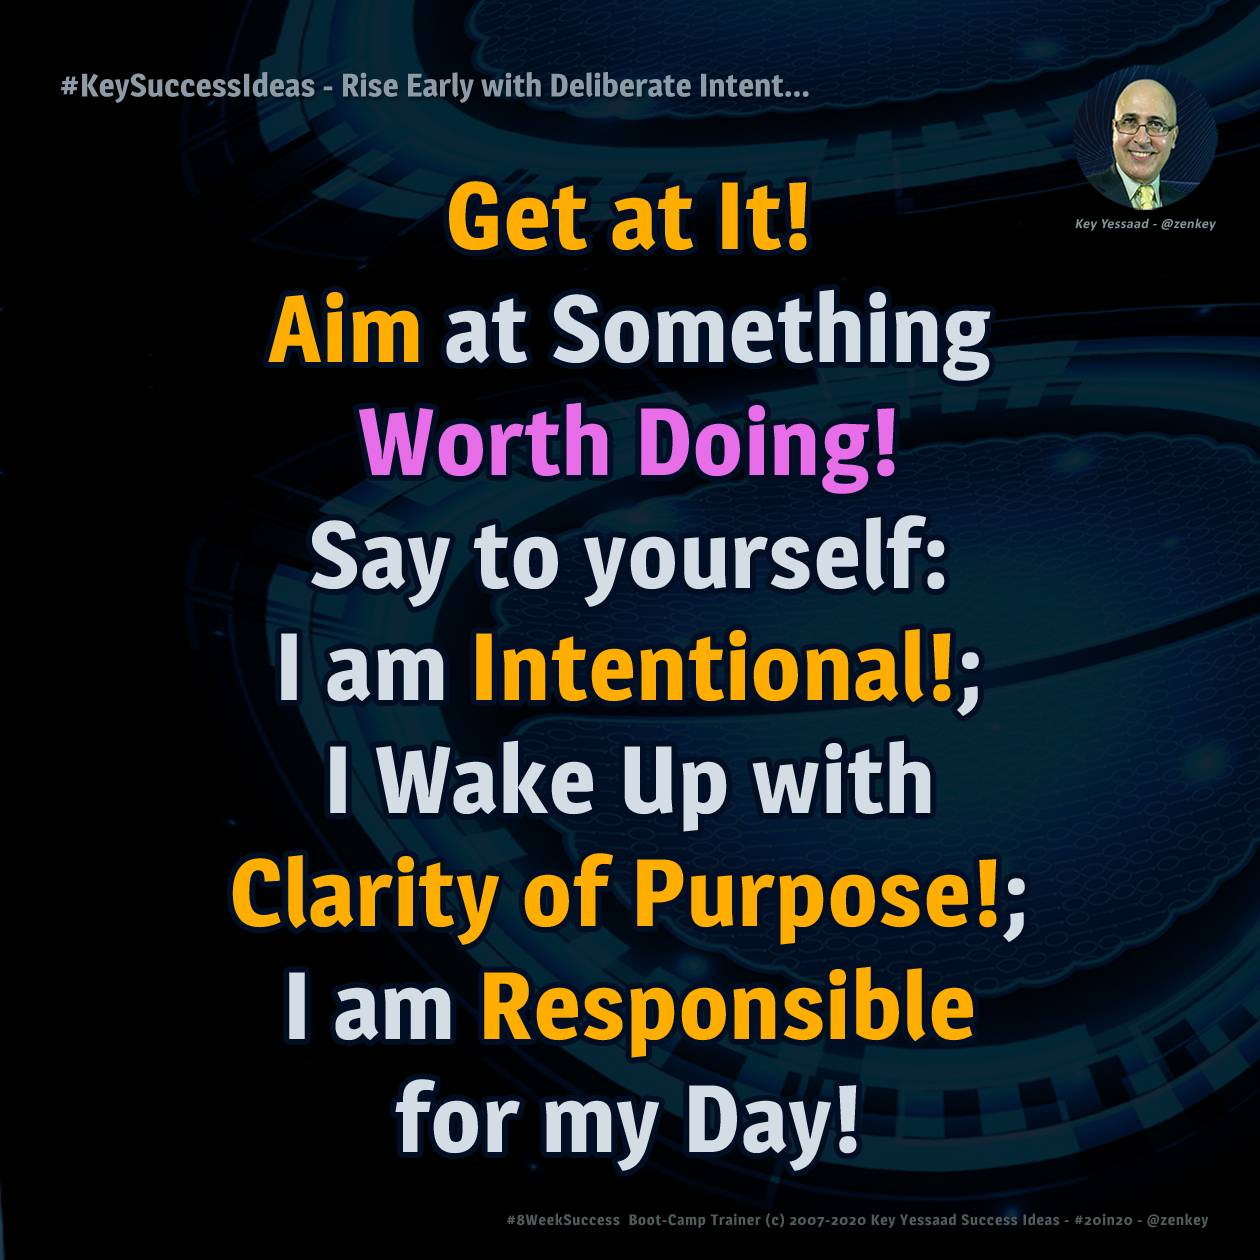 Rise Early with Deliberate Intent... - #KeySuccessIdeas